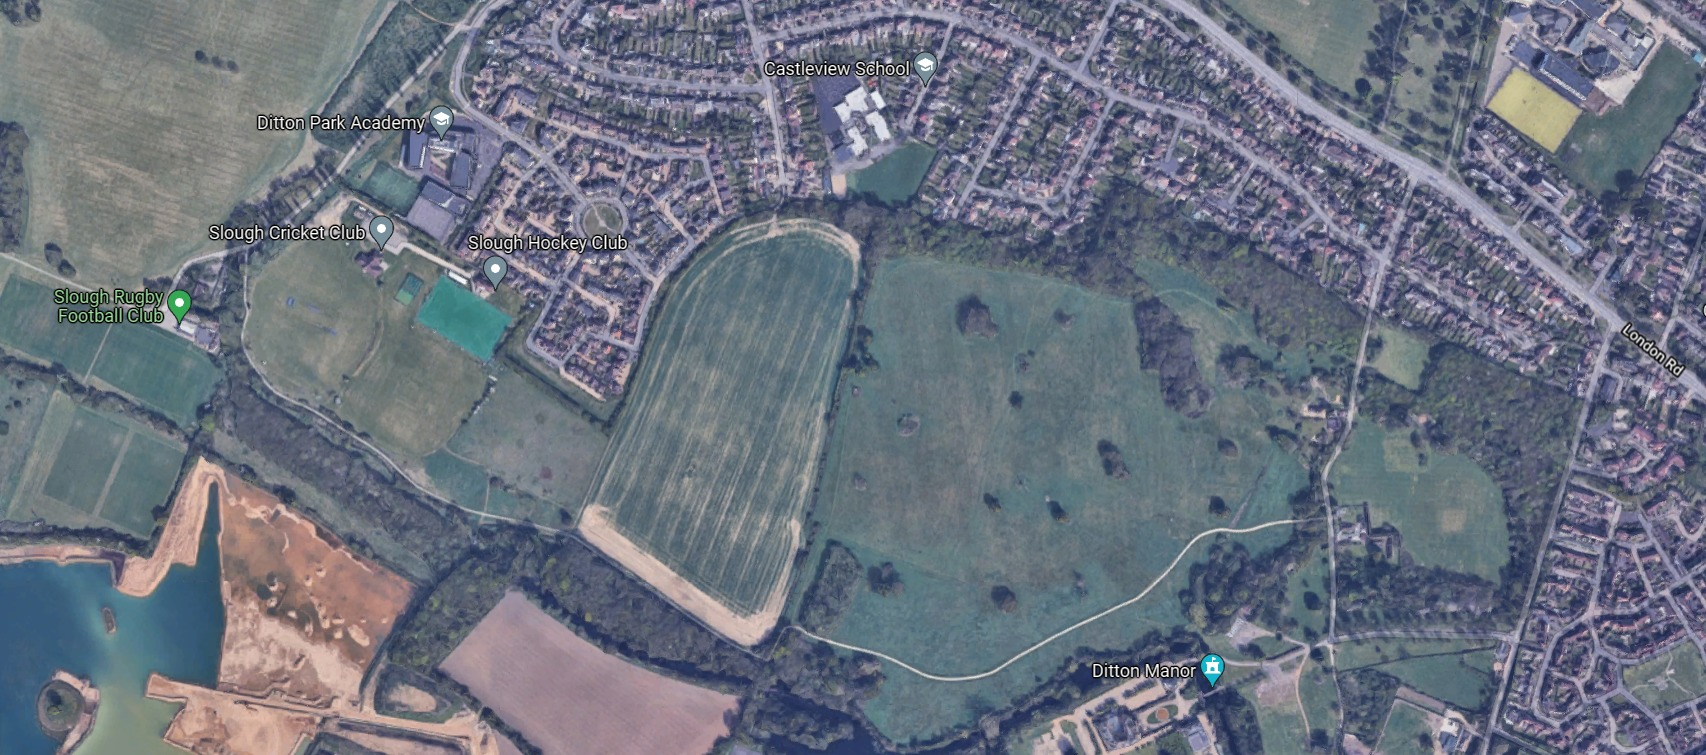 Land to the south of Blenheim Road could be released for new housing